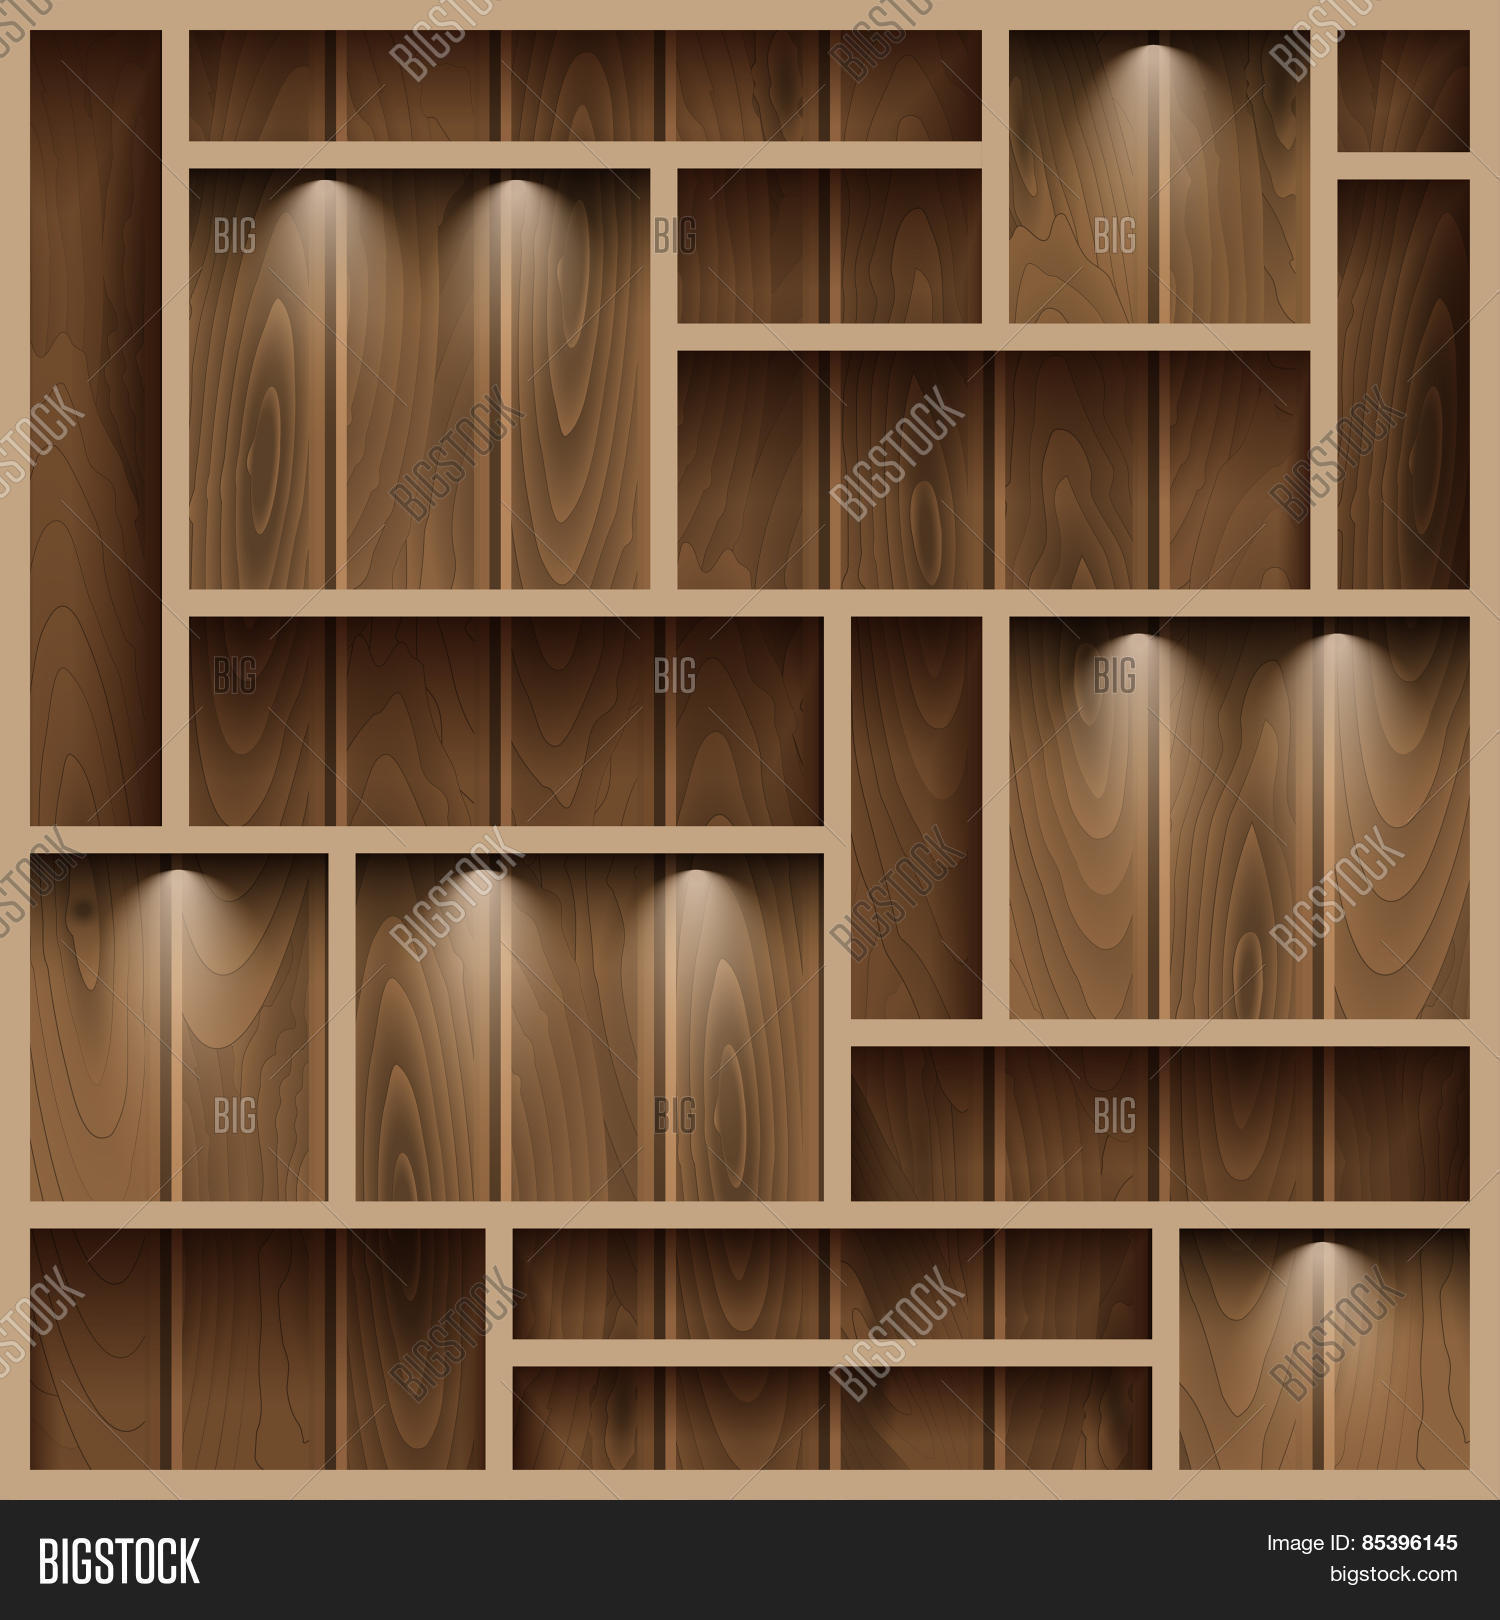 Wooden Shelves Vector & Photo (free Trial)   Bigstock